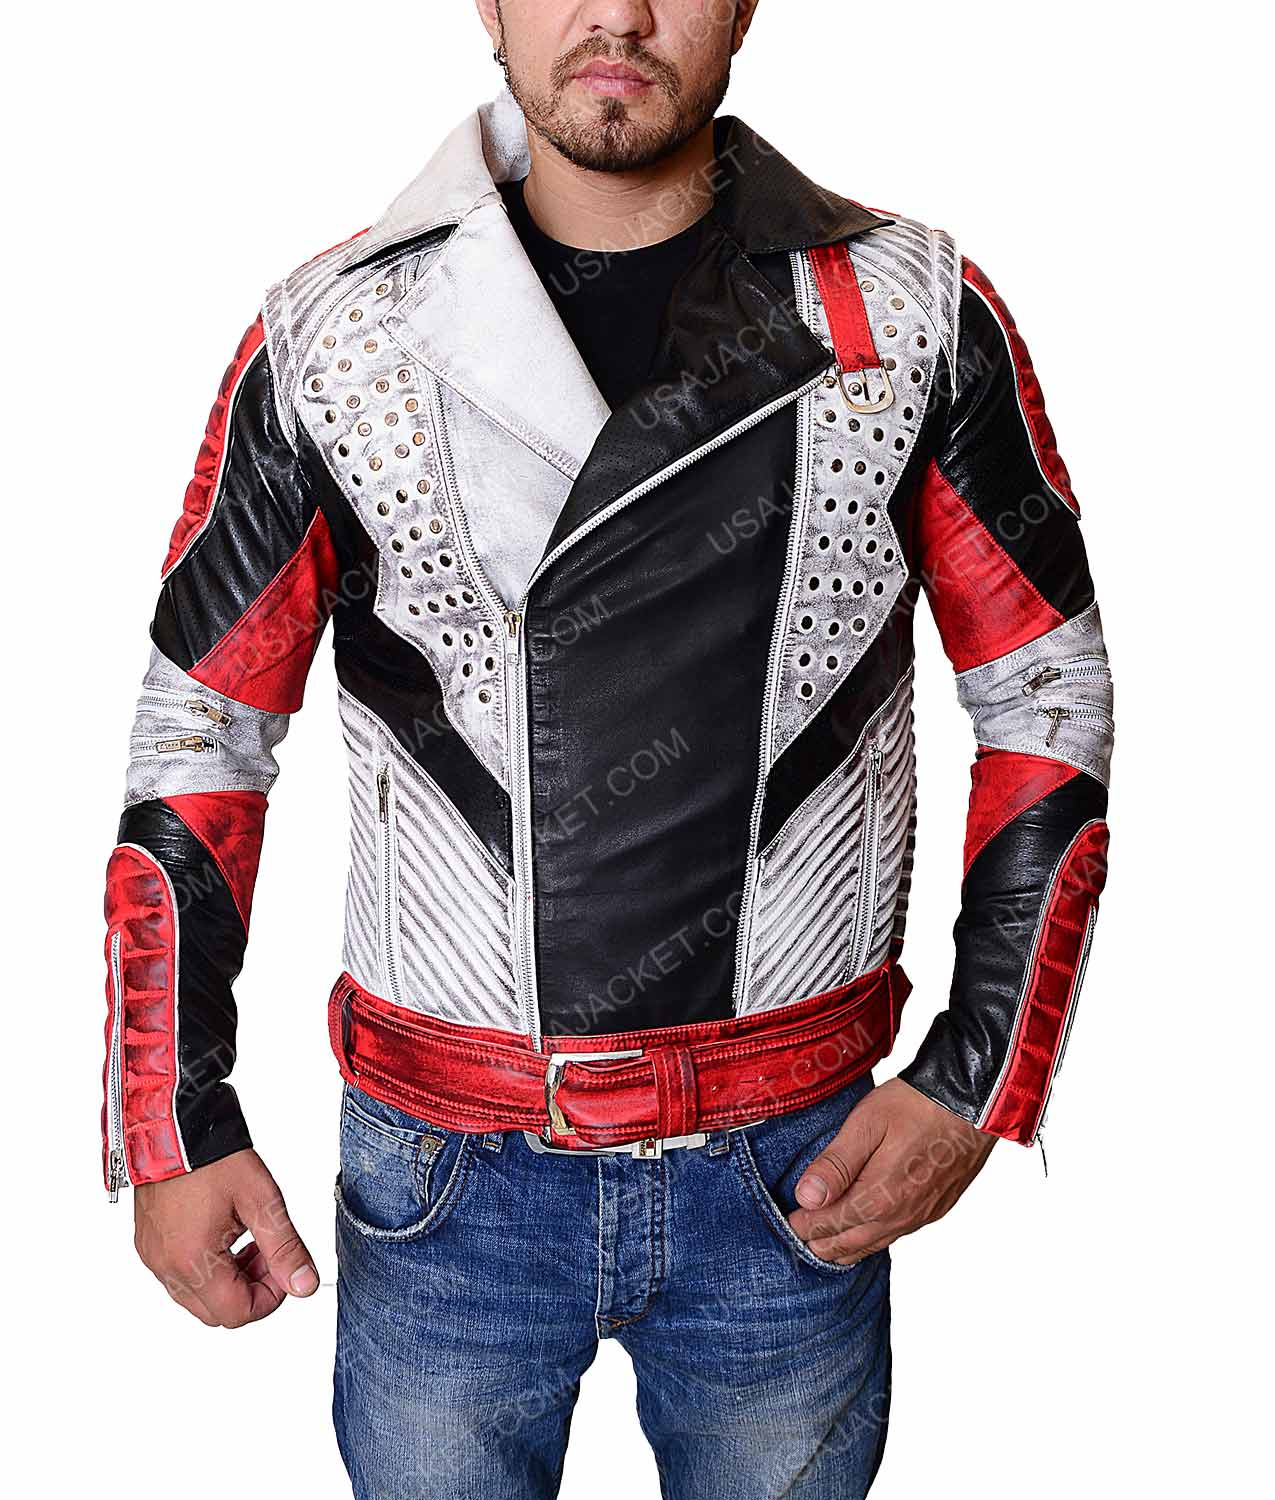 Carlos Descendants 2 Cameron Boyce Leather Jacket